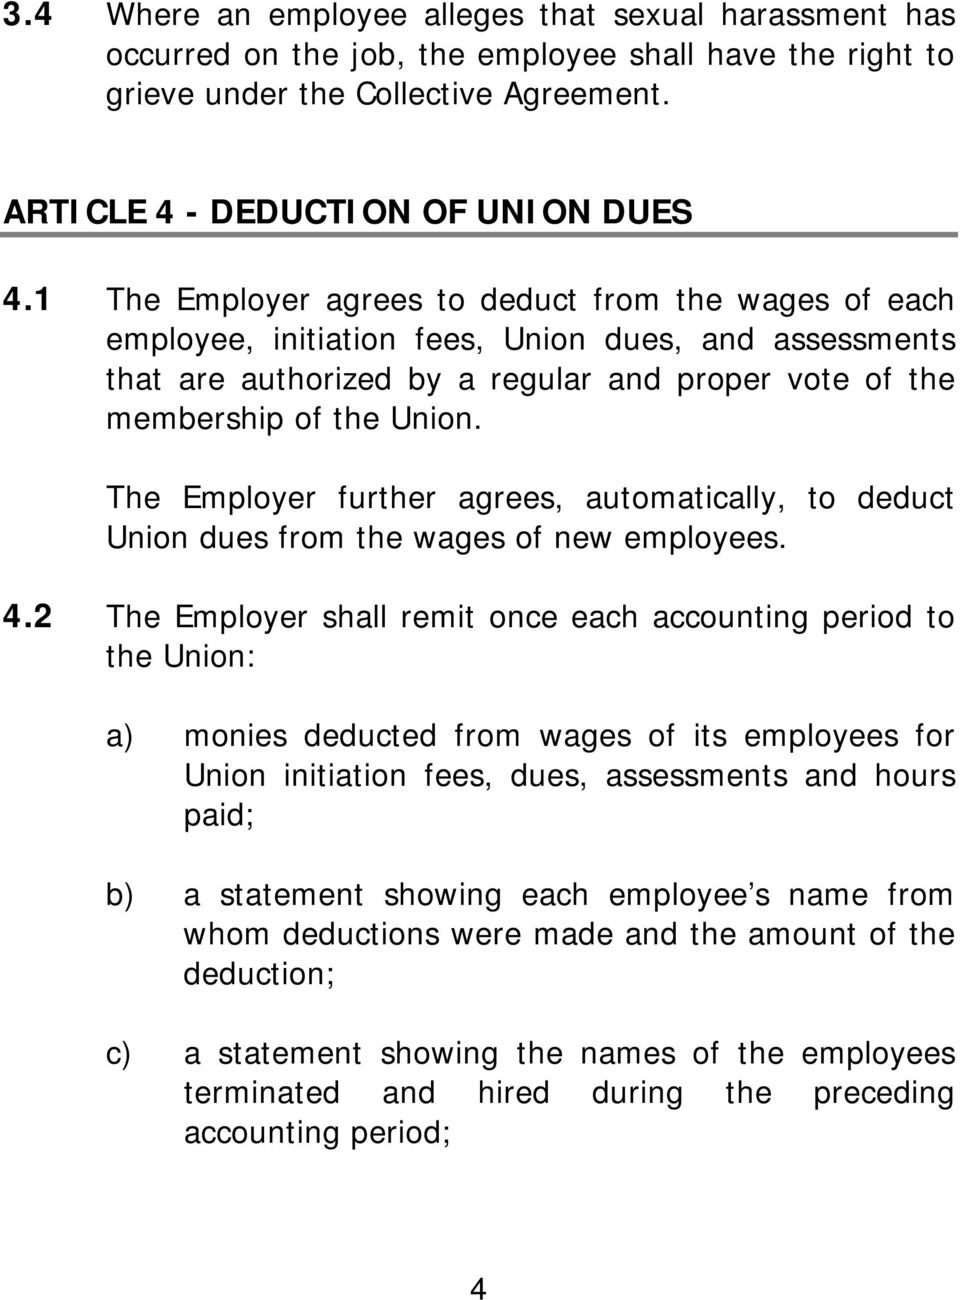 The Employer further agrees, automatically, to deduct Union dues from the wages of new employees. 4.